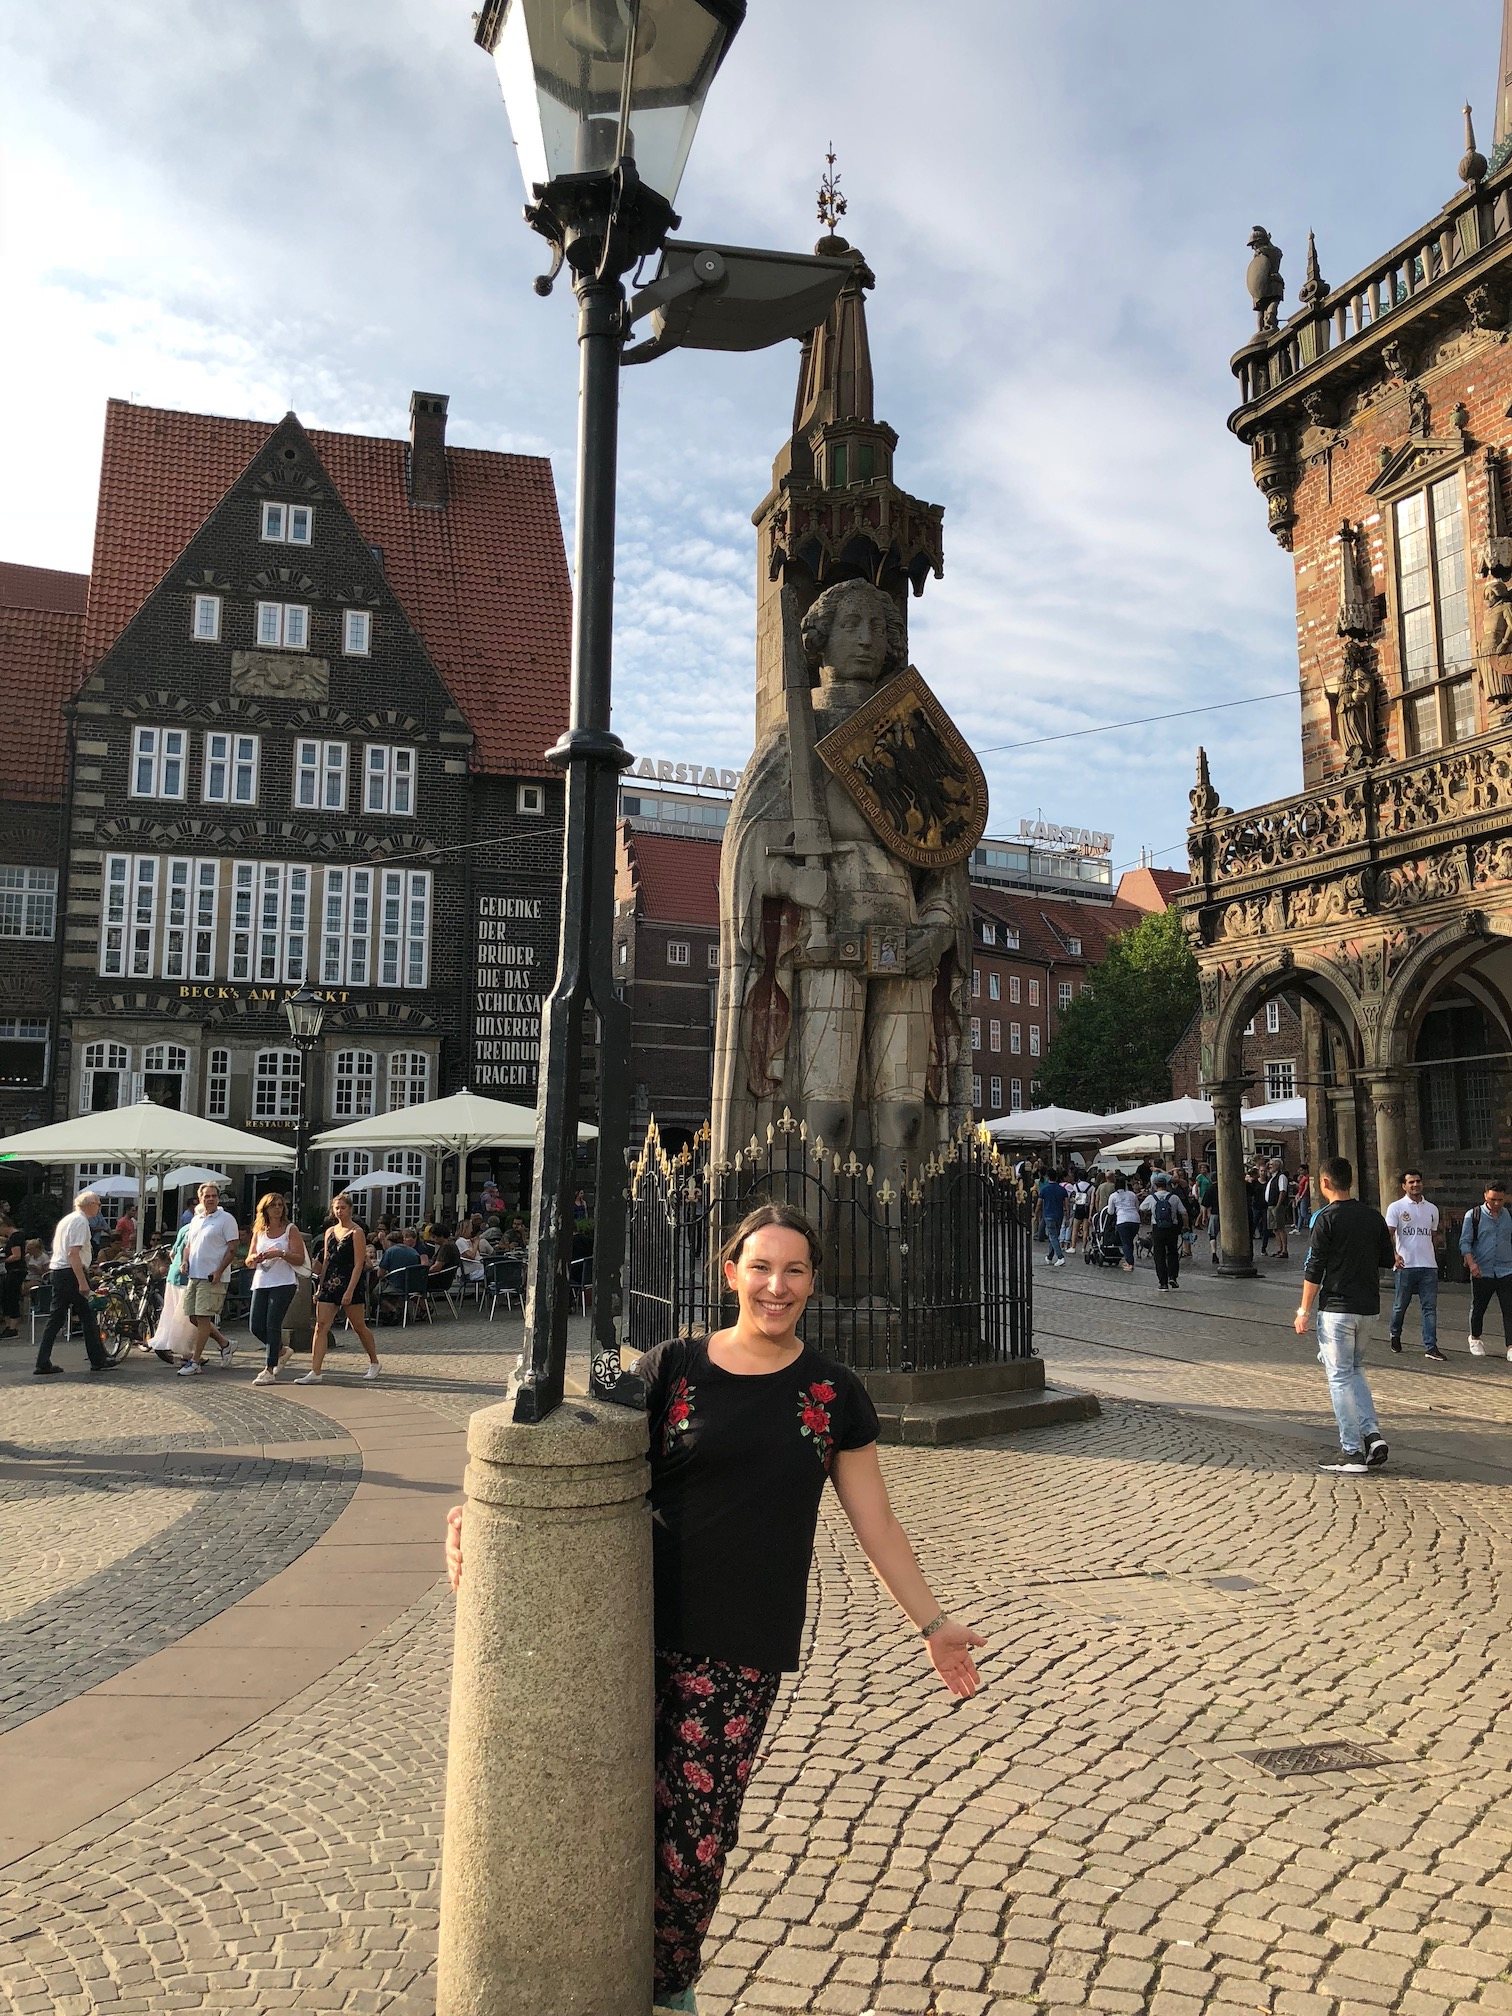 Roland statue and me in summer_Photo Copyright Sonja Irani_RevisitGermany.com